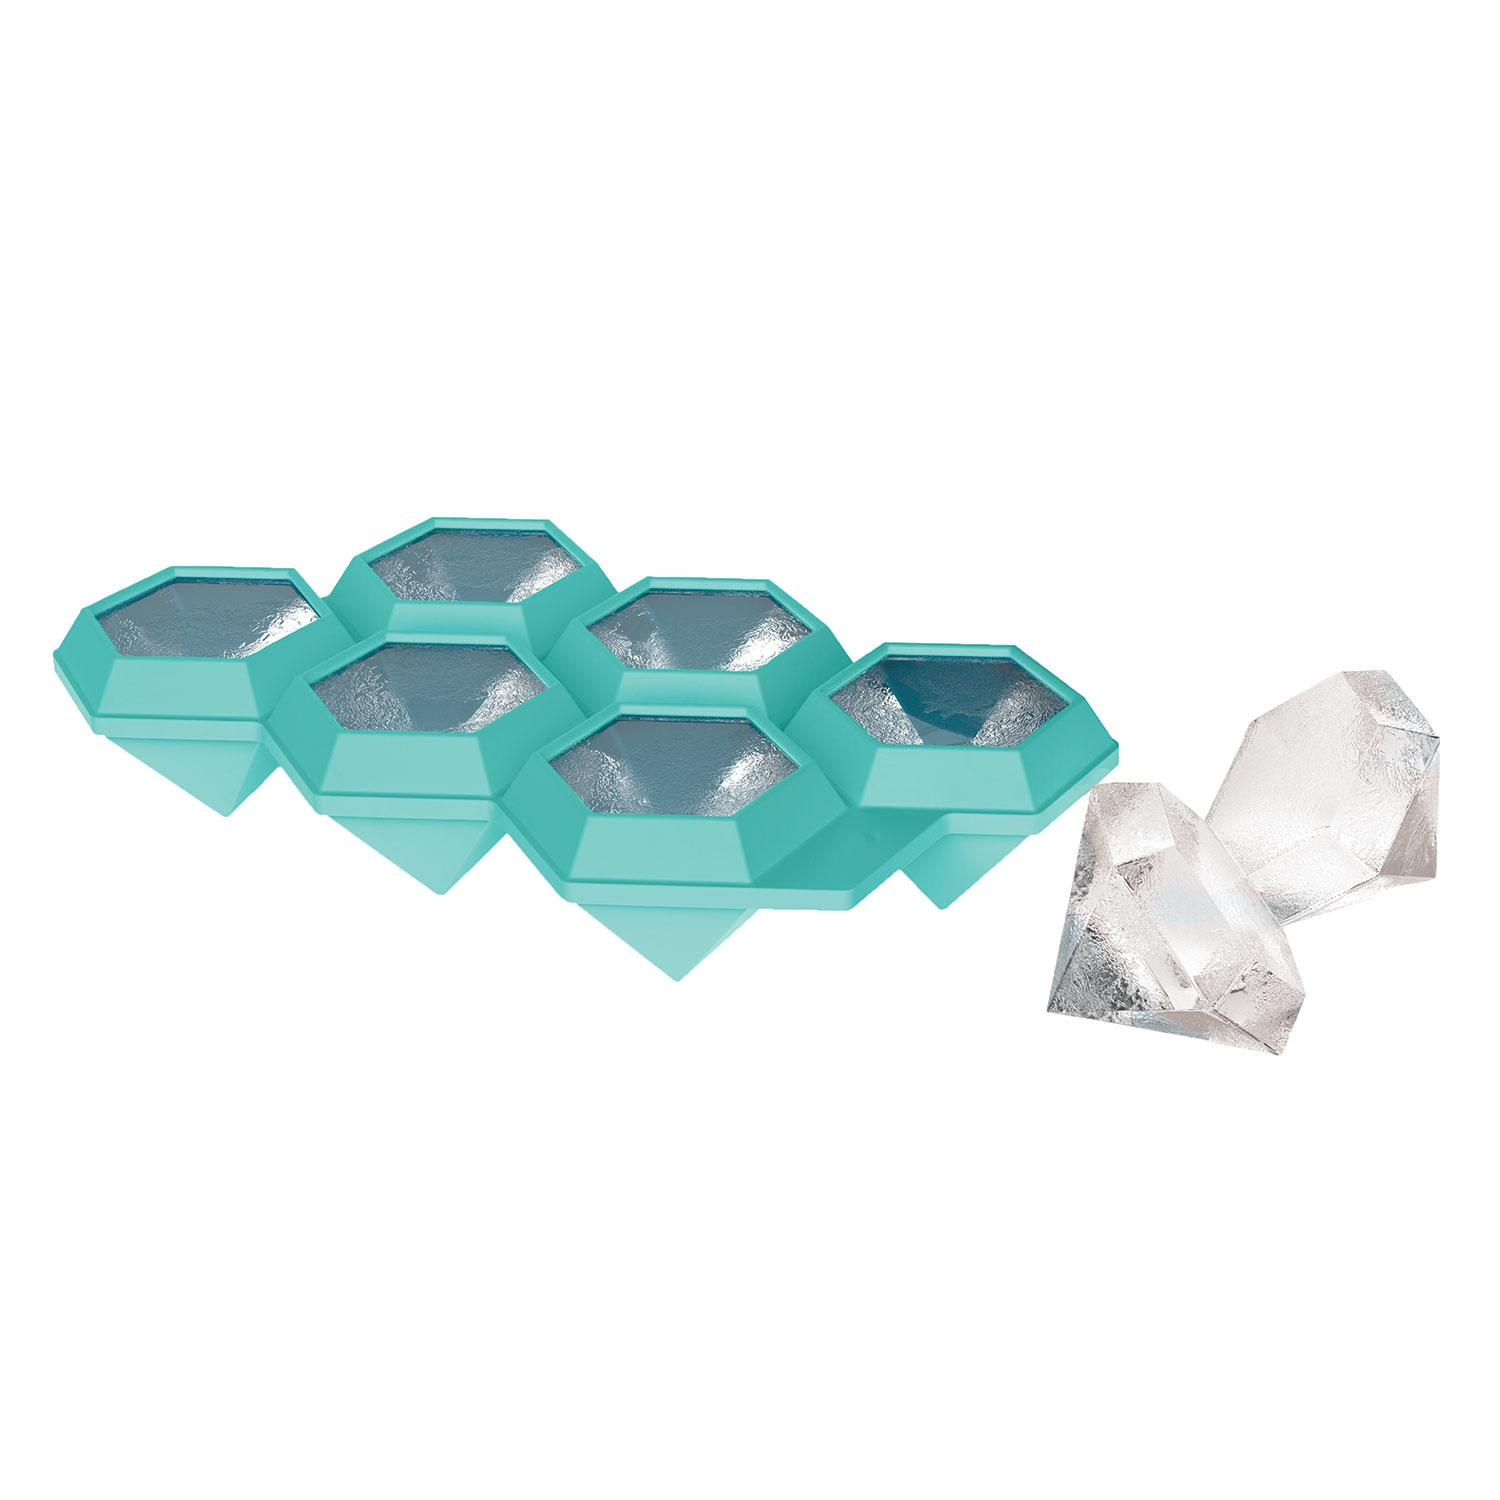 Uberstar Diamond Ice Tray - Only £8.99